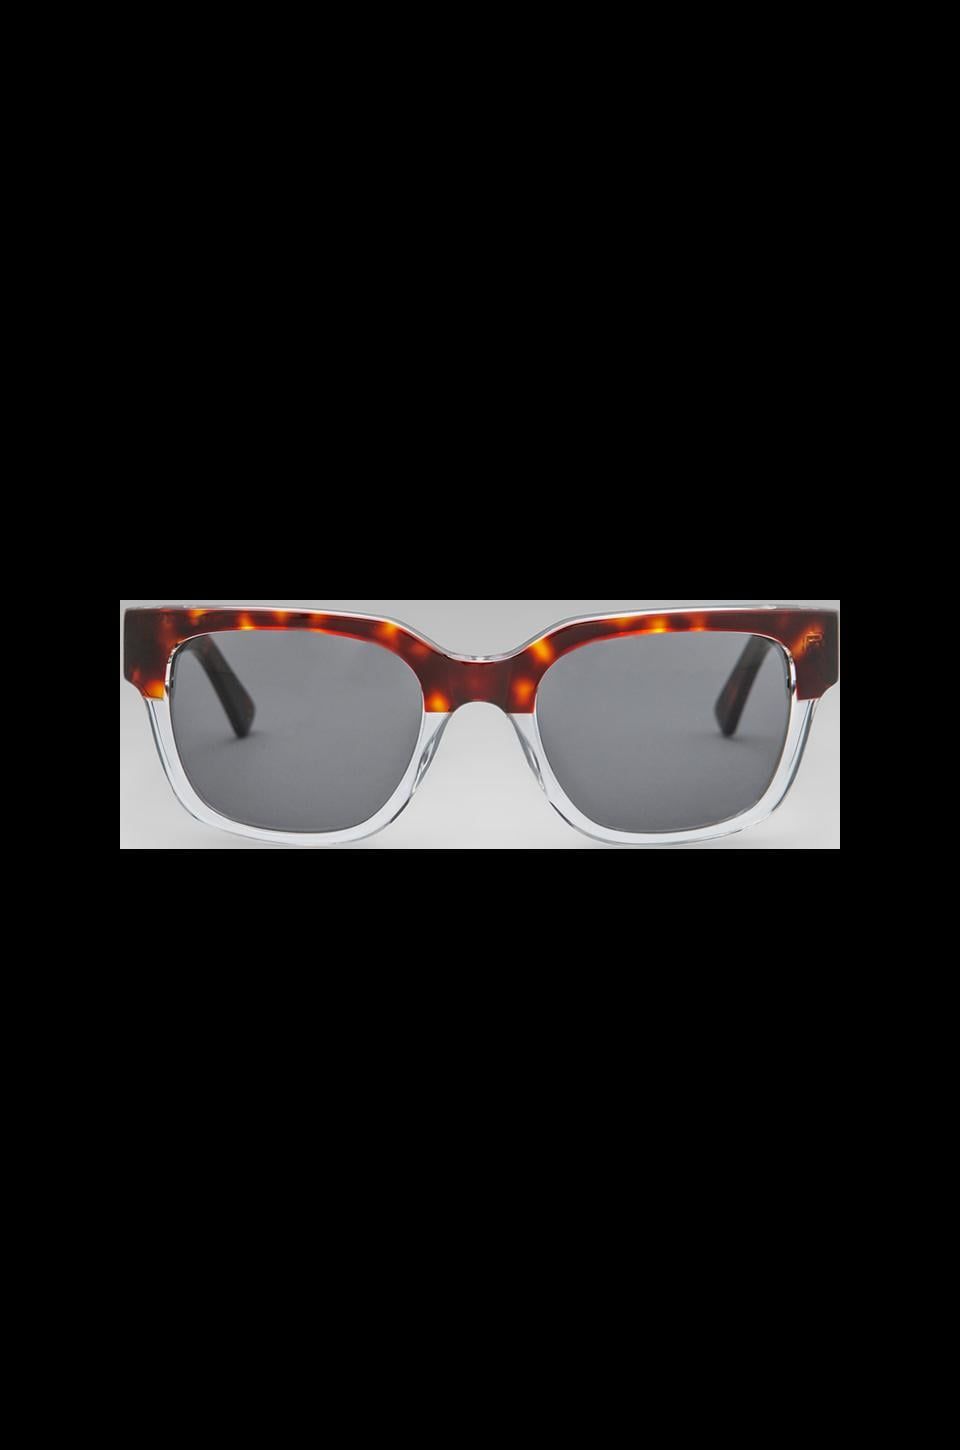 RAEN Garwood Sunglass in Quartz Tortoise